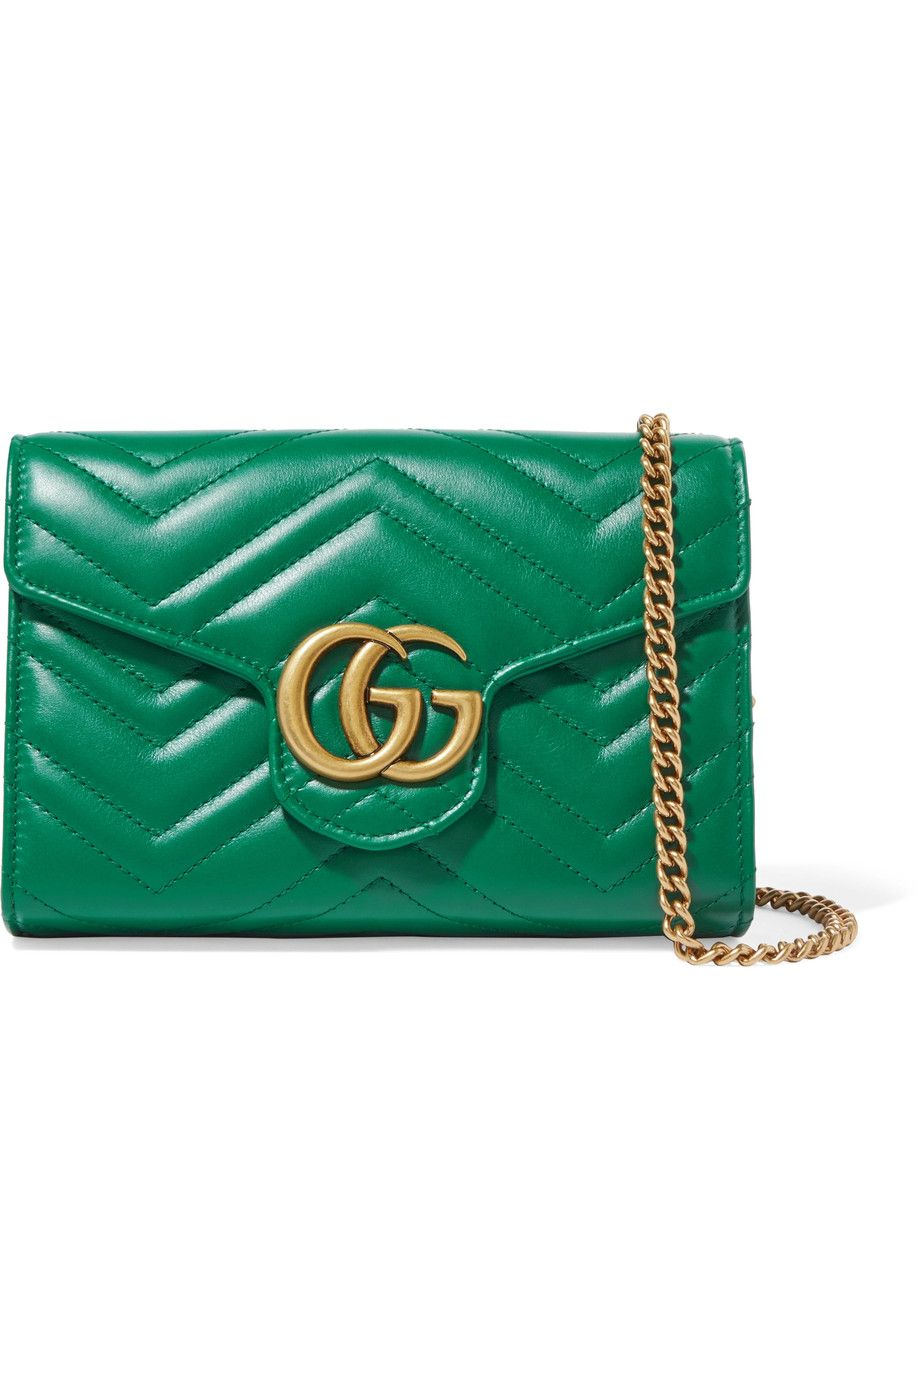 4331434f026 GUCCI GG Marmont mini quilted leather shoulder bag